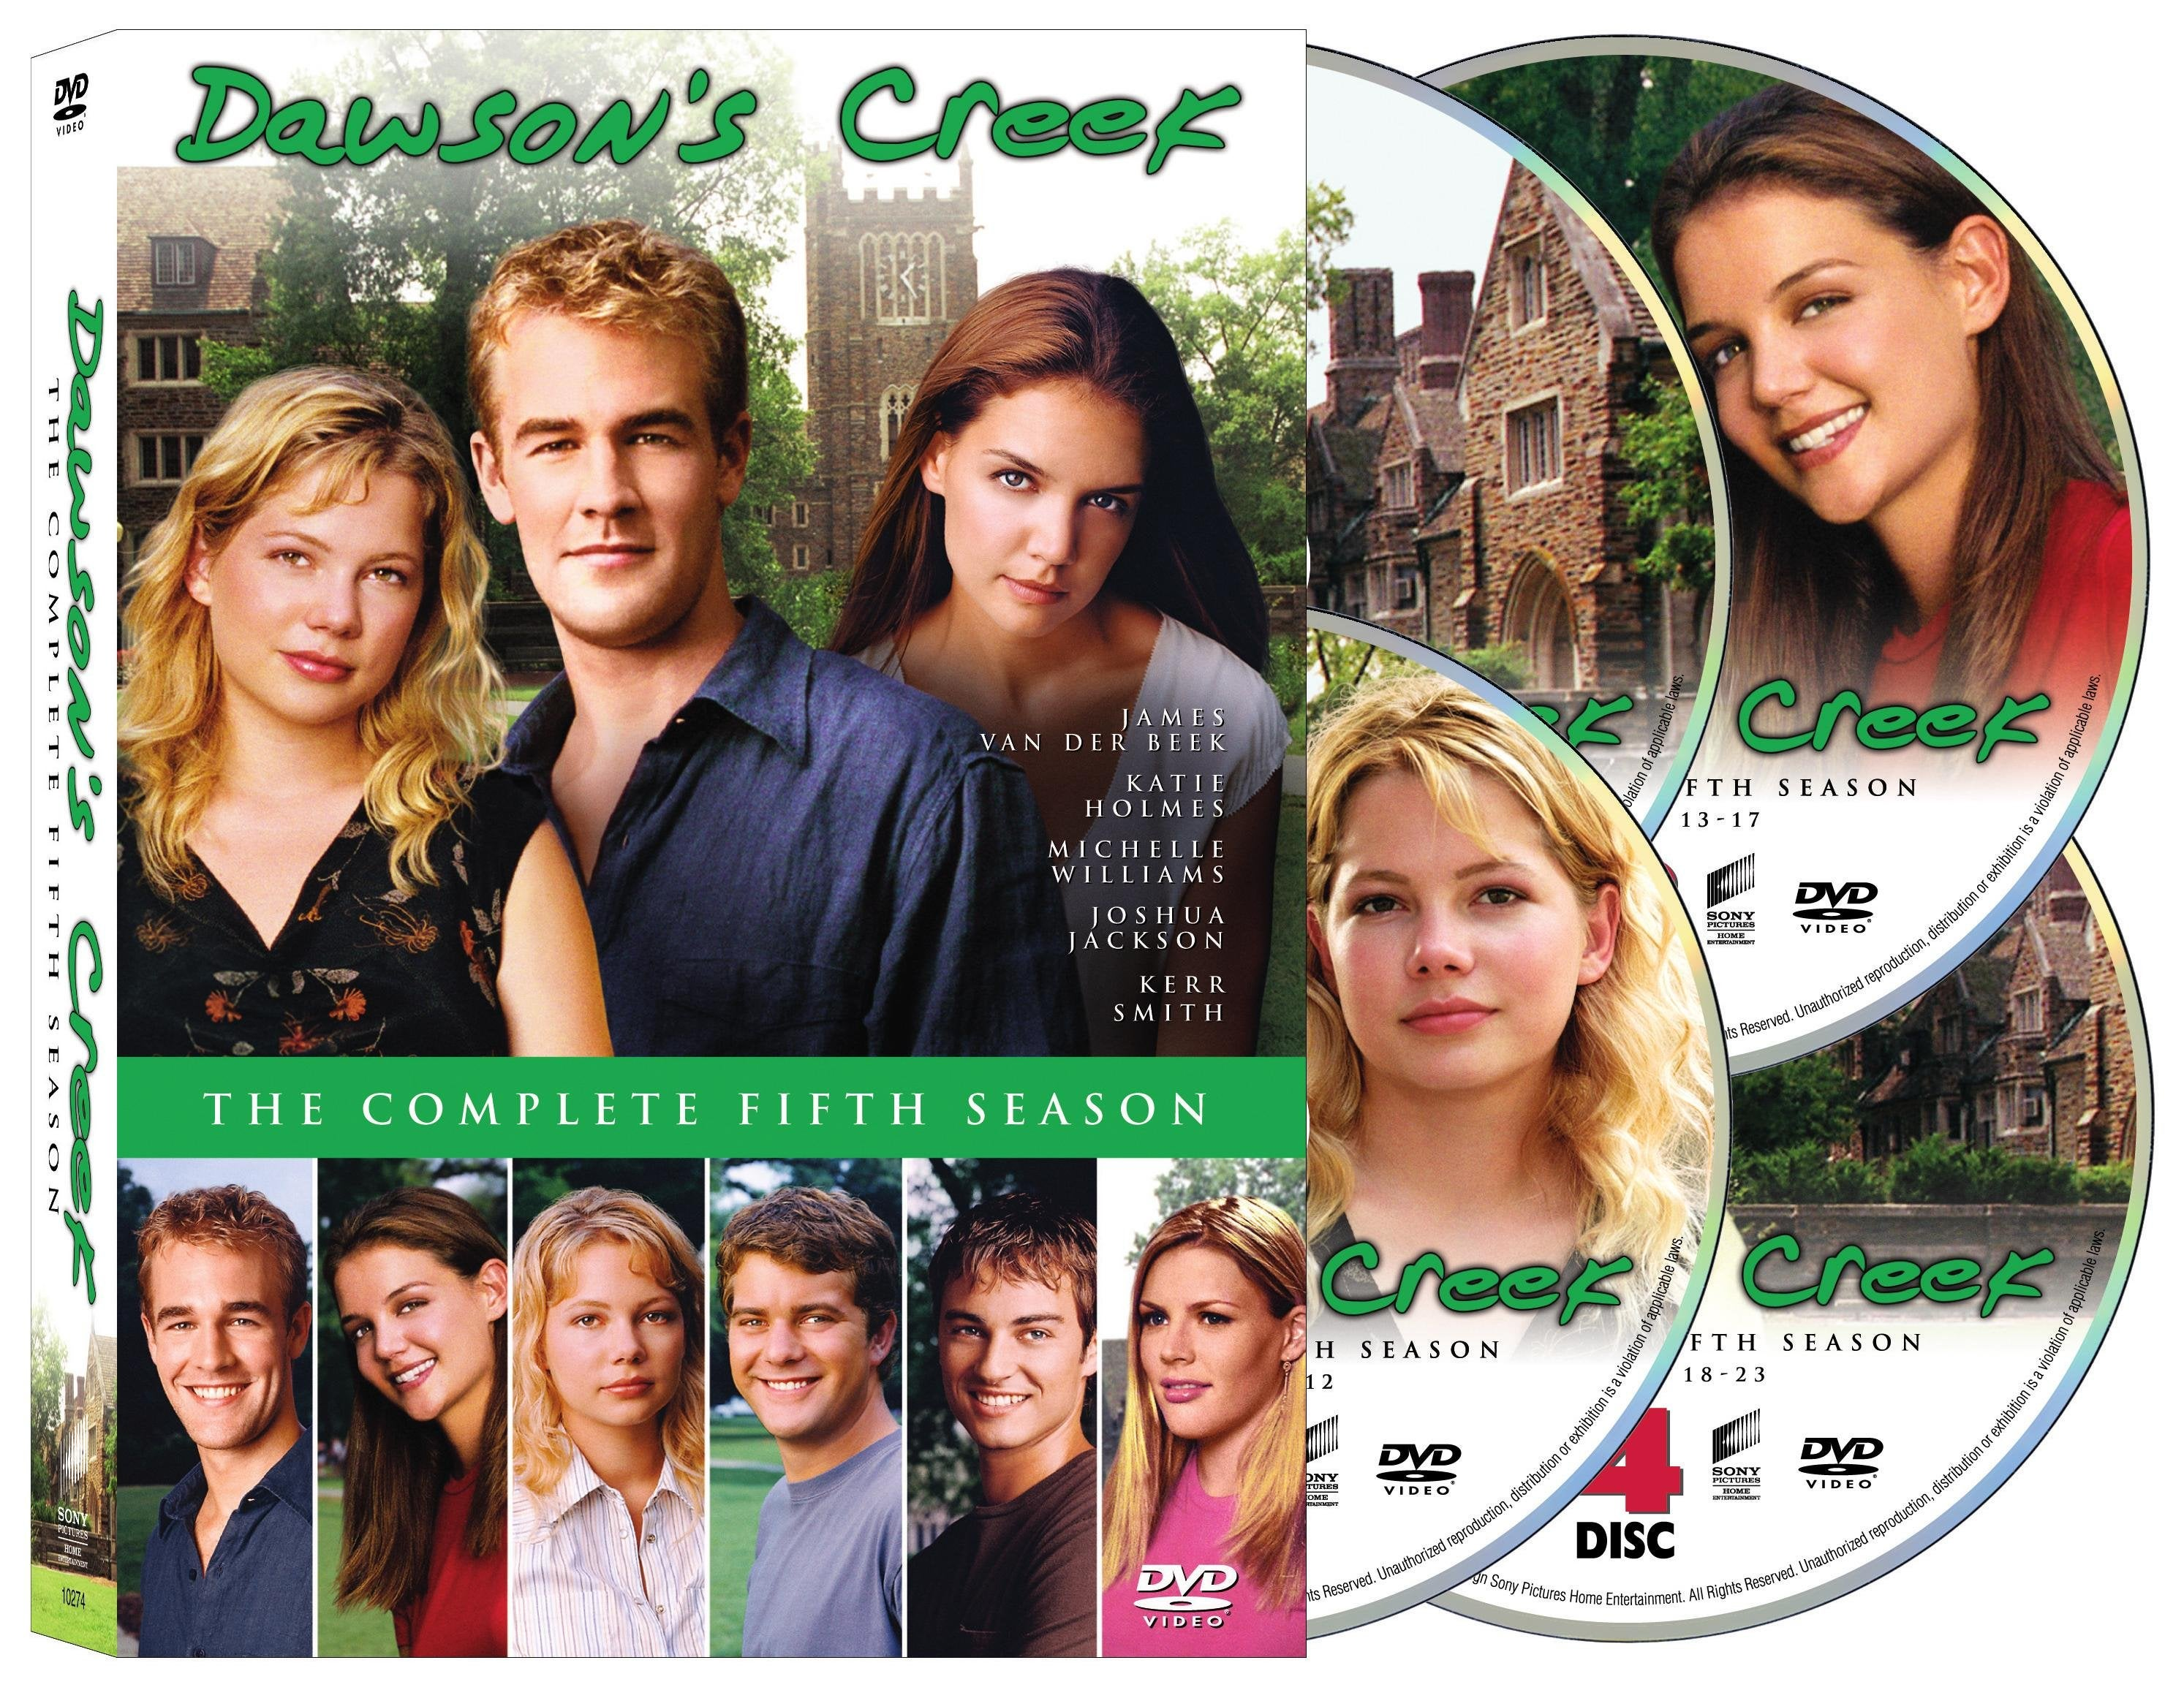 Dawson's Creek: The Complete Fifth Season (DVD)